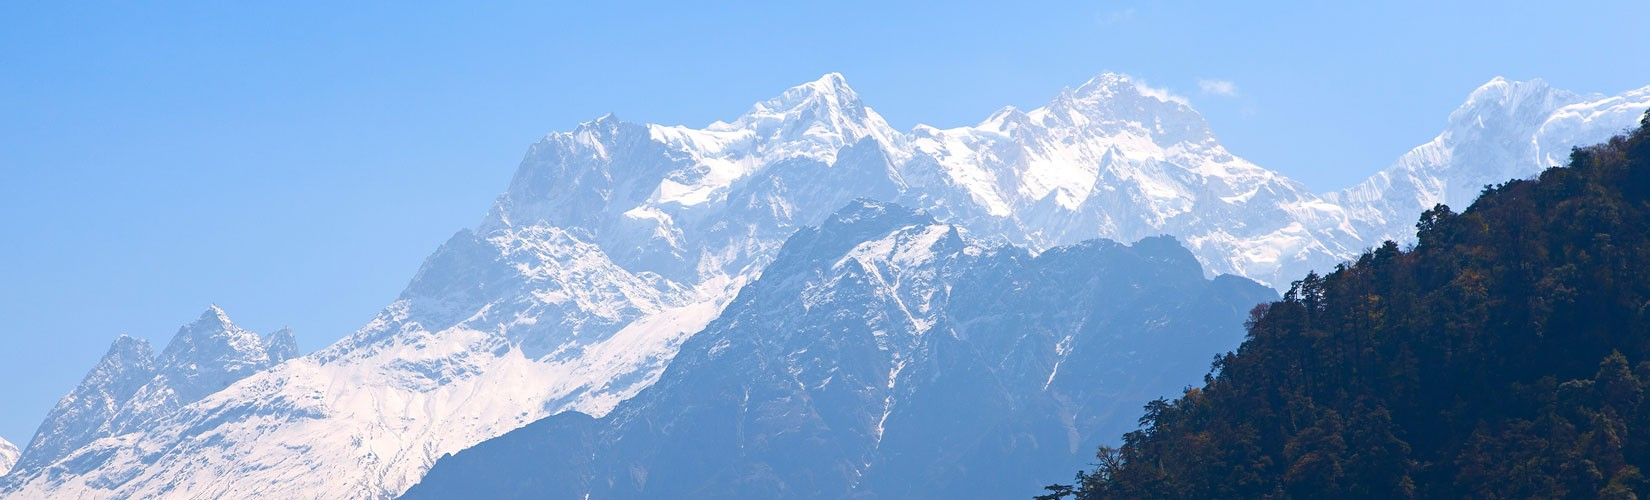 Manaslu is located in Gorkha district. Nepal Government gave trekking permit for Manaslu region in 1991.